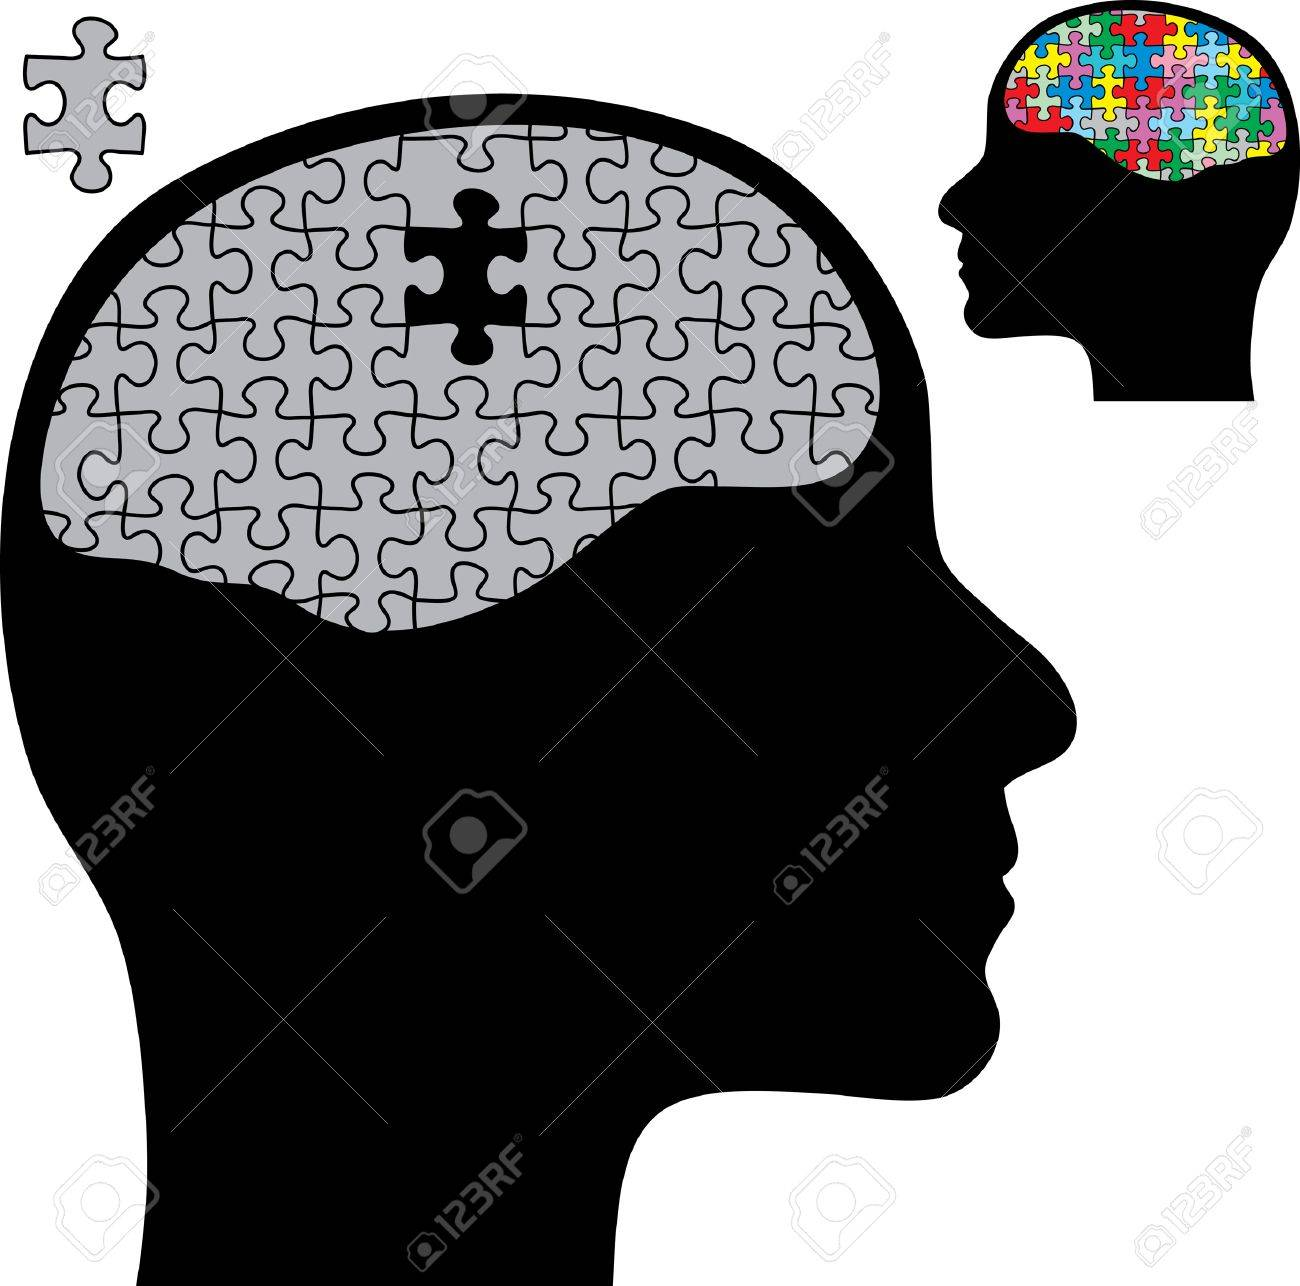 abstract illustration with brain and puzzle Stock Vector - 7107750